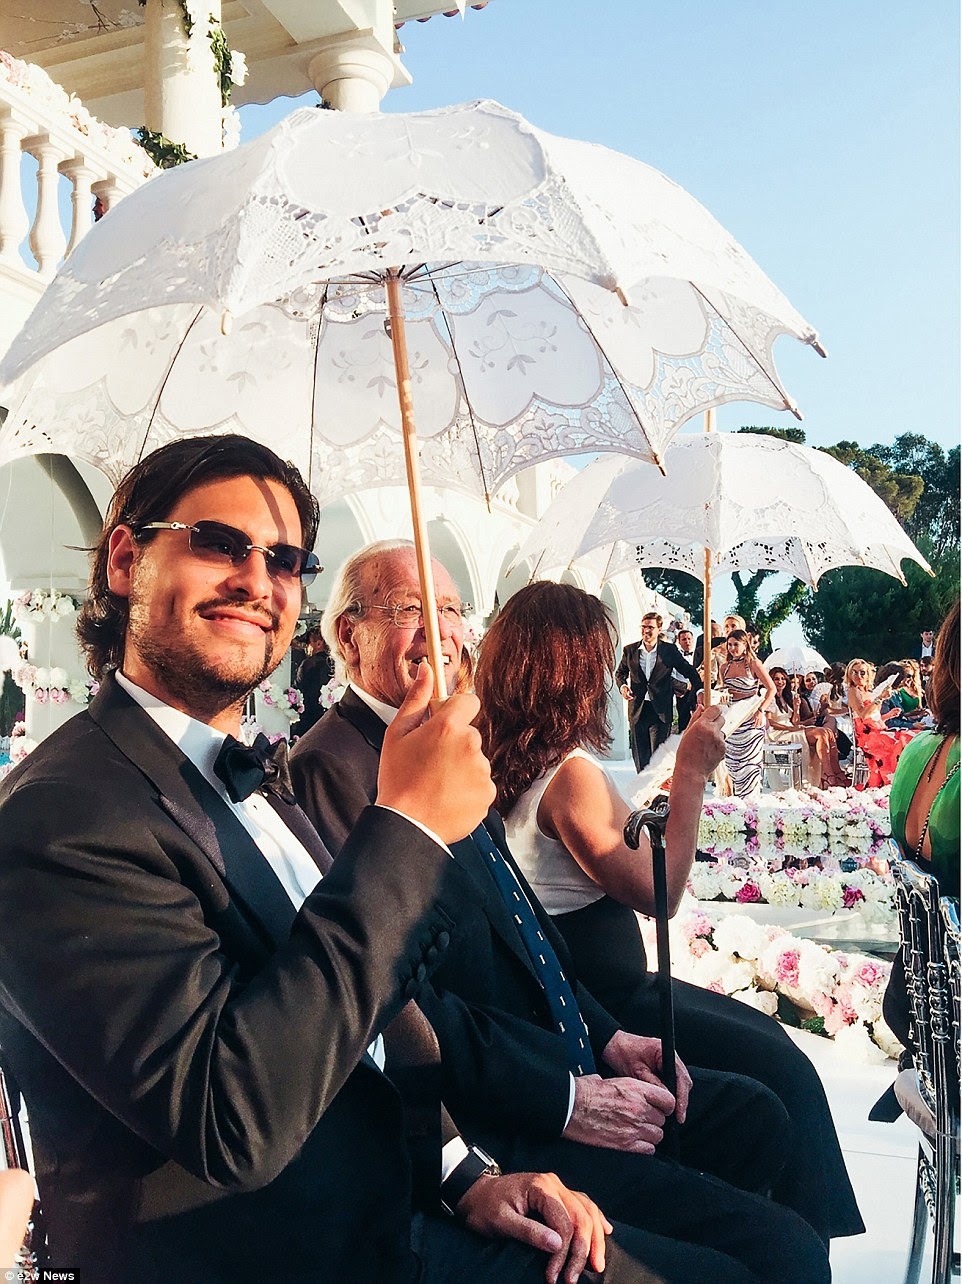 Even the umbrellas oozed money at this French Riviera wedding of a Russian property heiress and the grandson of a Gaddafi henchman